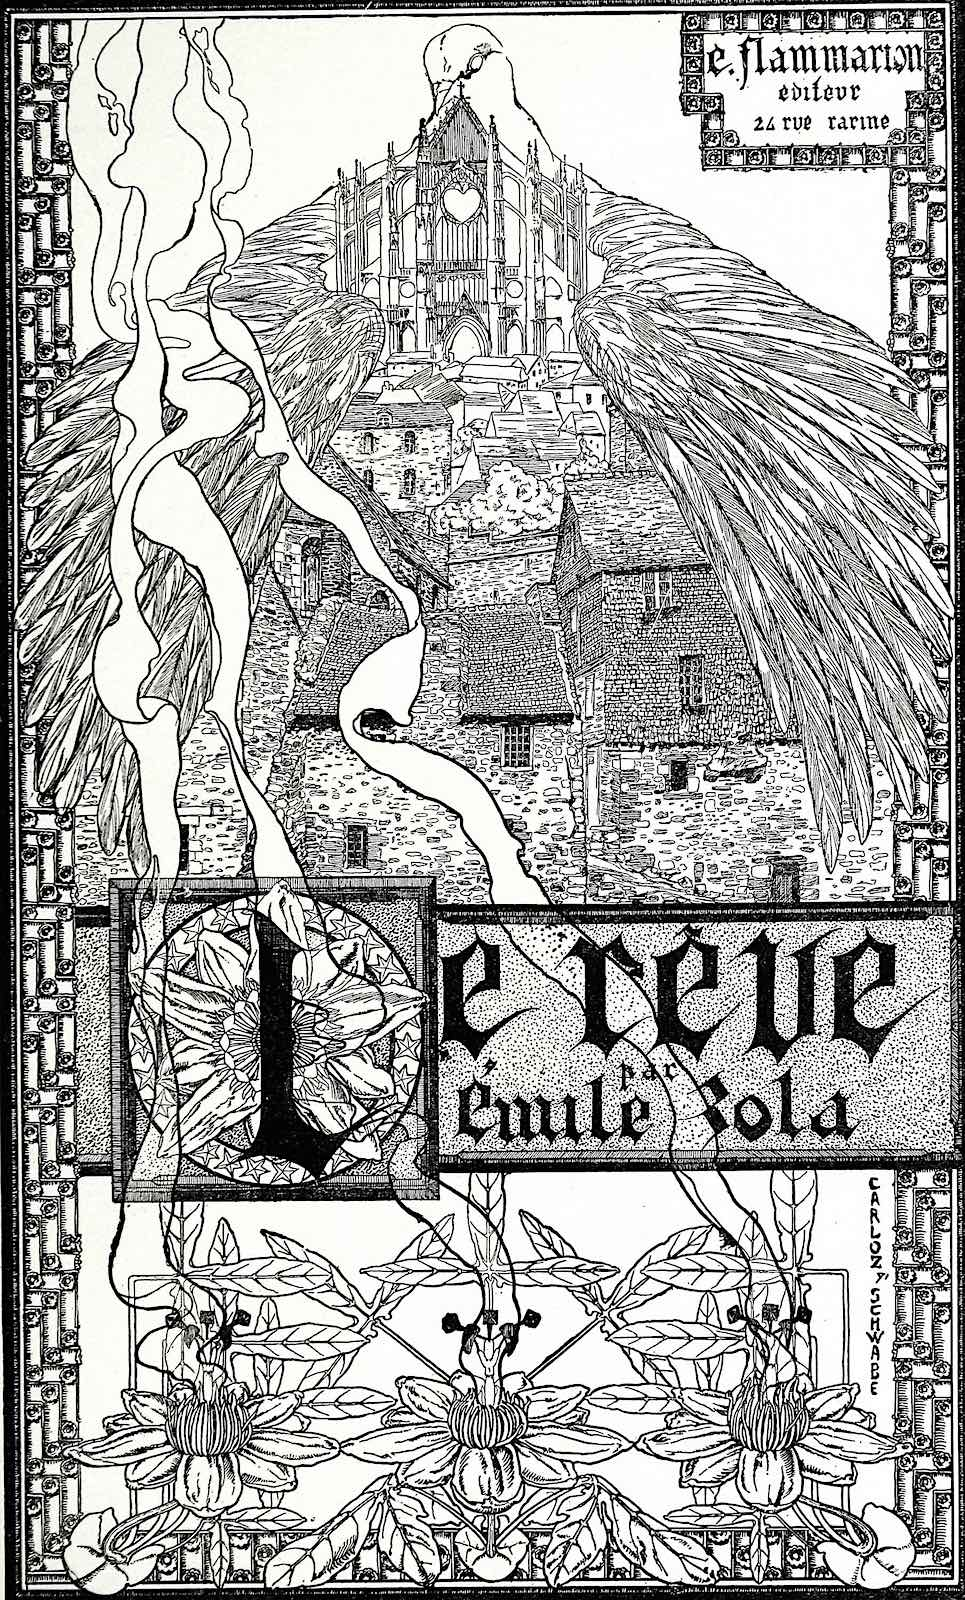 a Carlos Schwabe illustration for Le Reve with a giant bird embracing a town